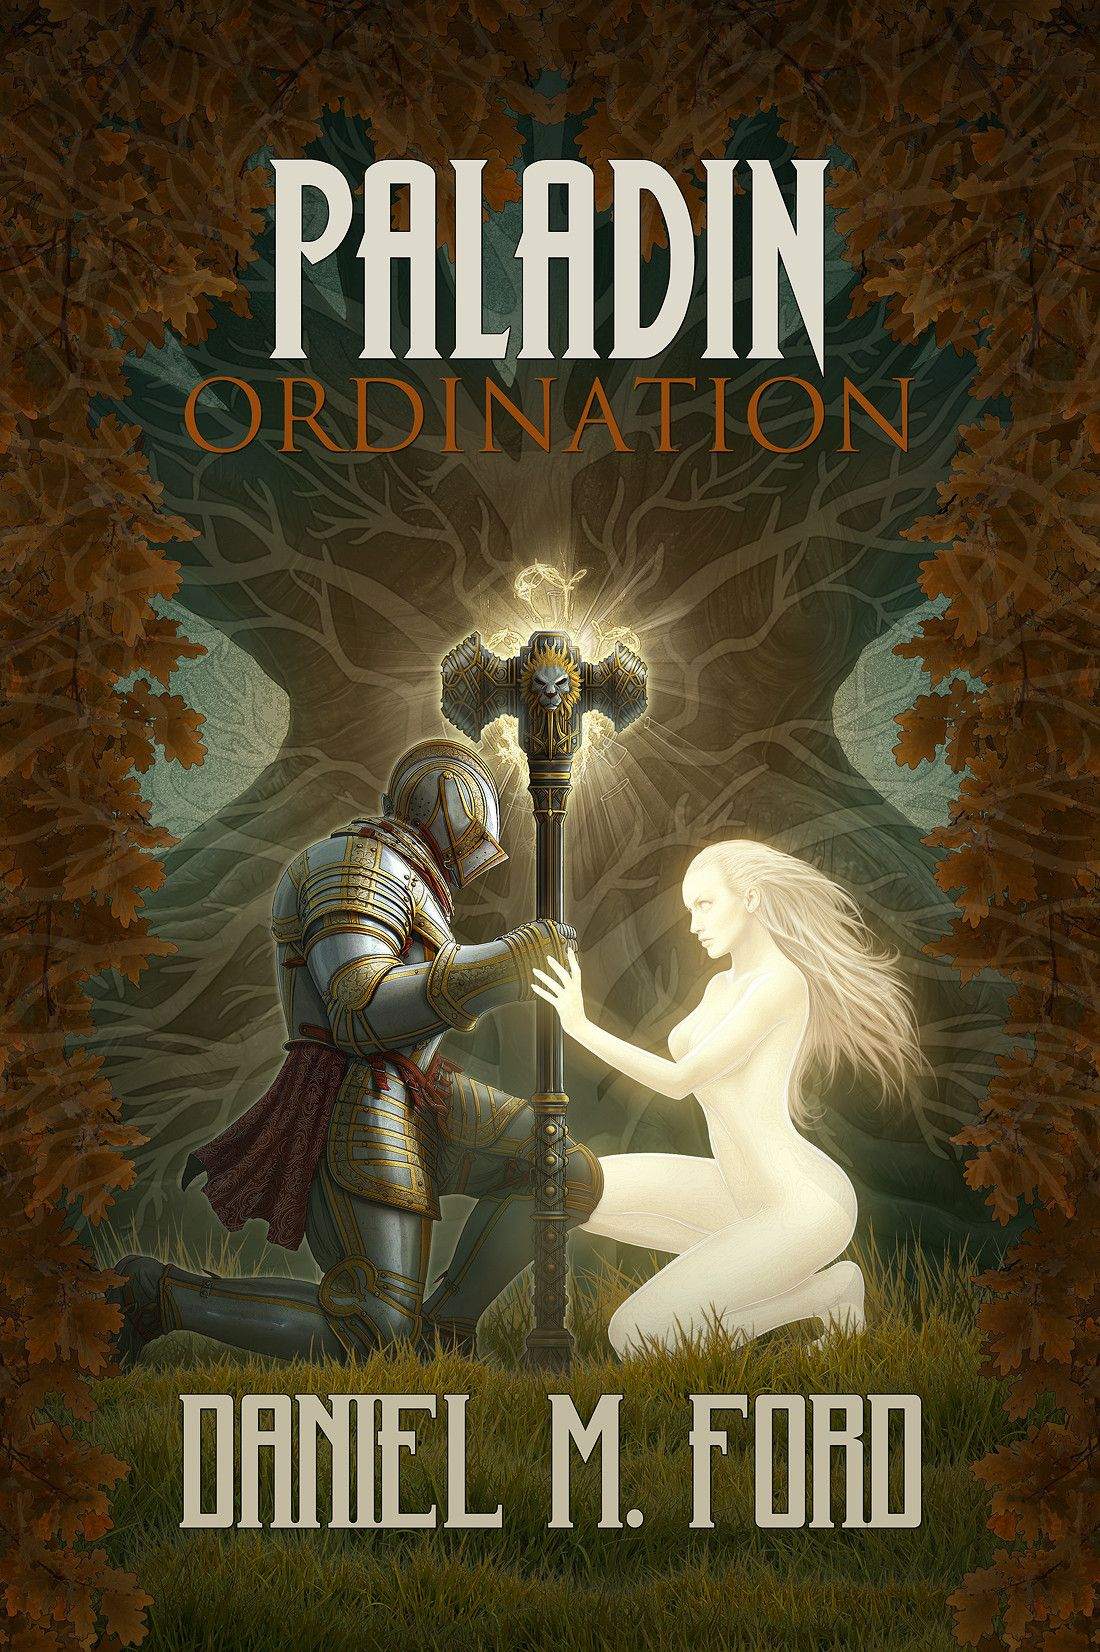 Paladin - Ordination Cover (Kerem Beyit) - cover art for Ordination: Book One of the Paladin Trilog